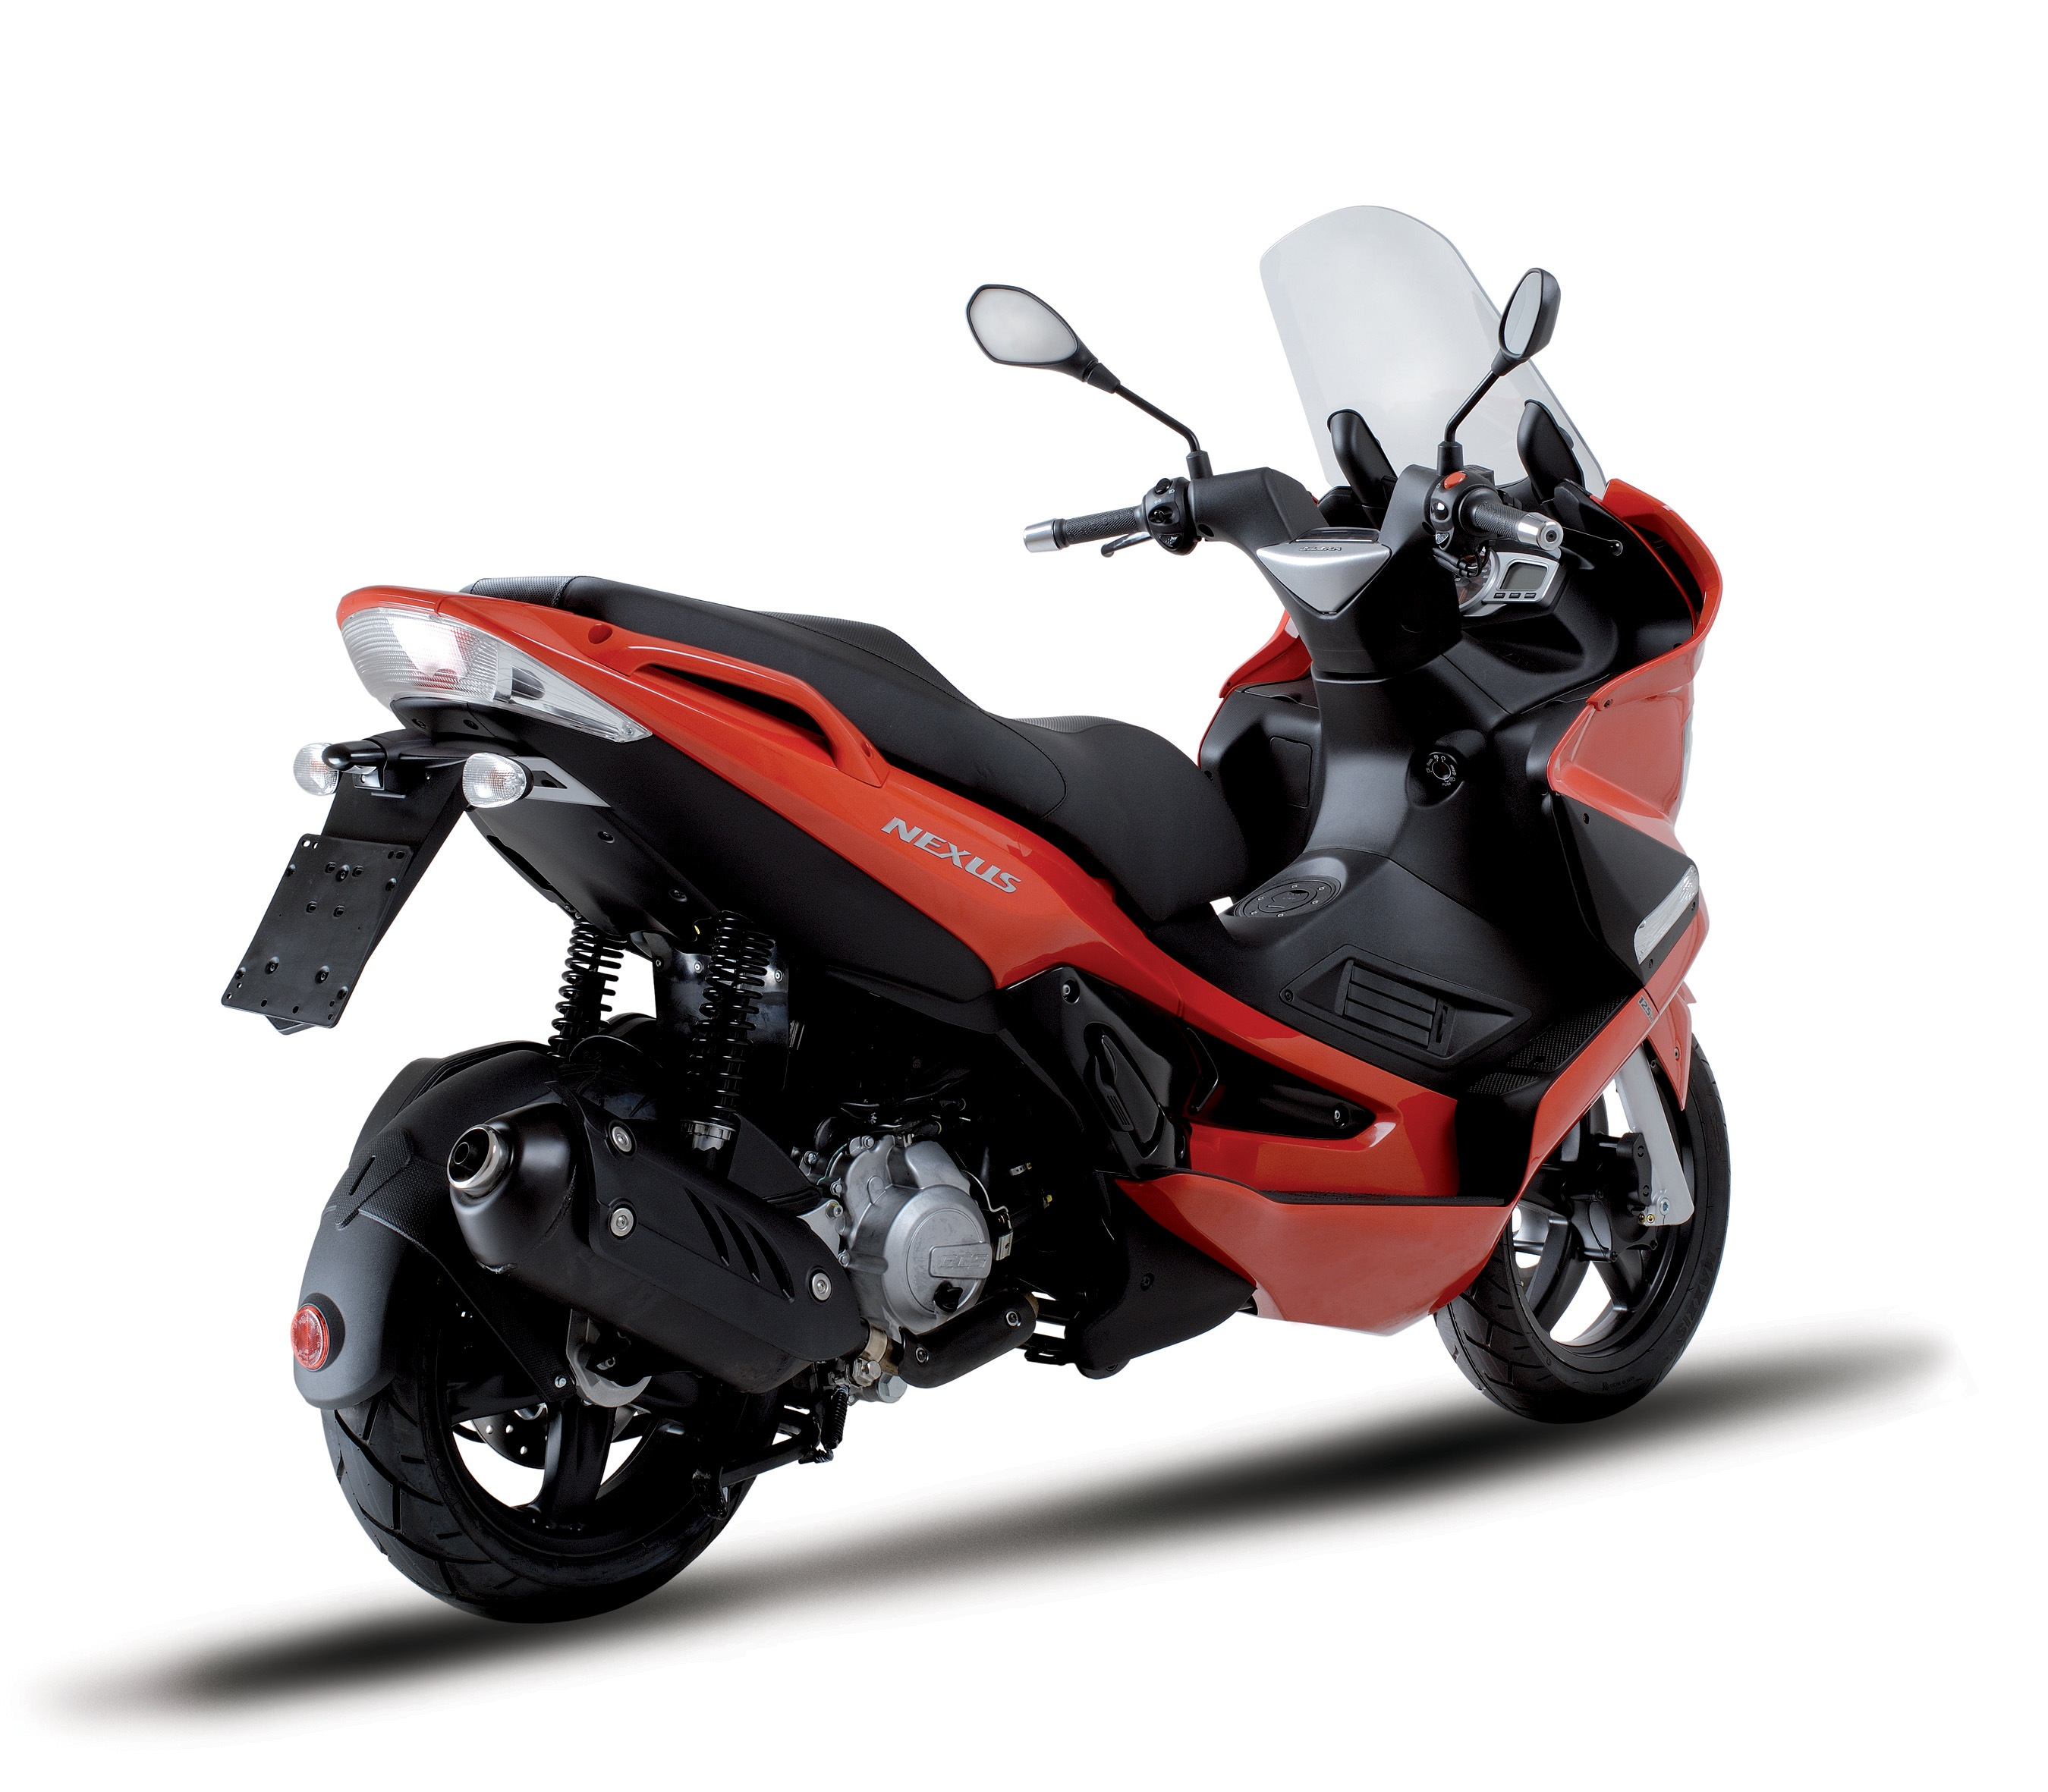 2009 gilera nexus 500 pics specs and information. Black Bedroom Furniture Sets. Home Design Ideas